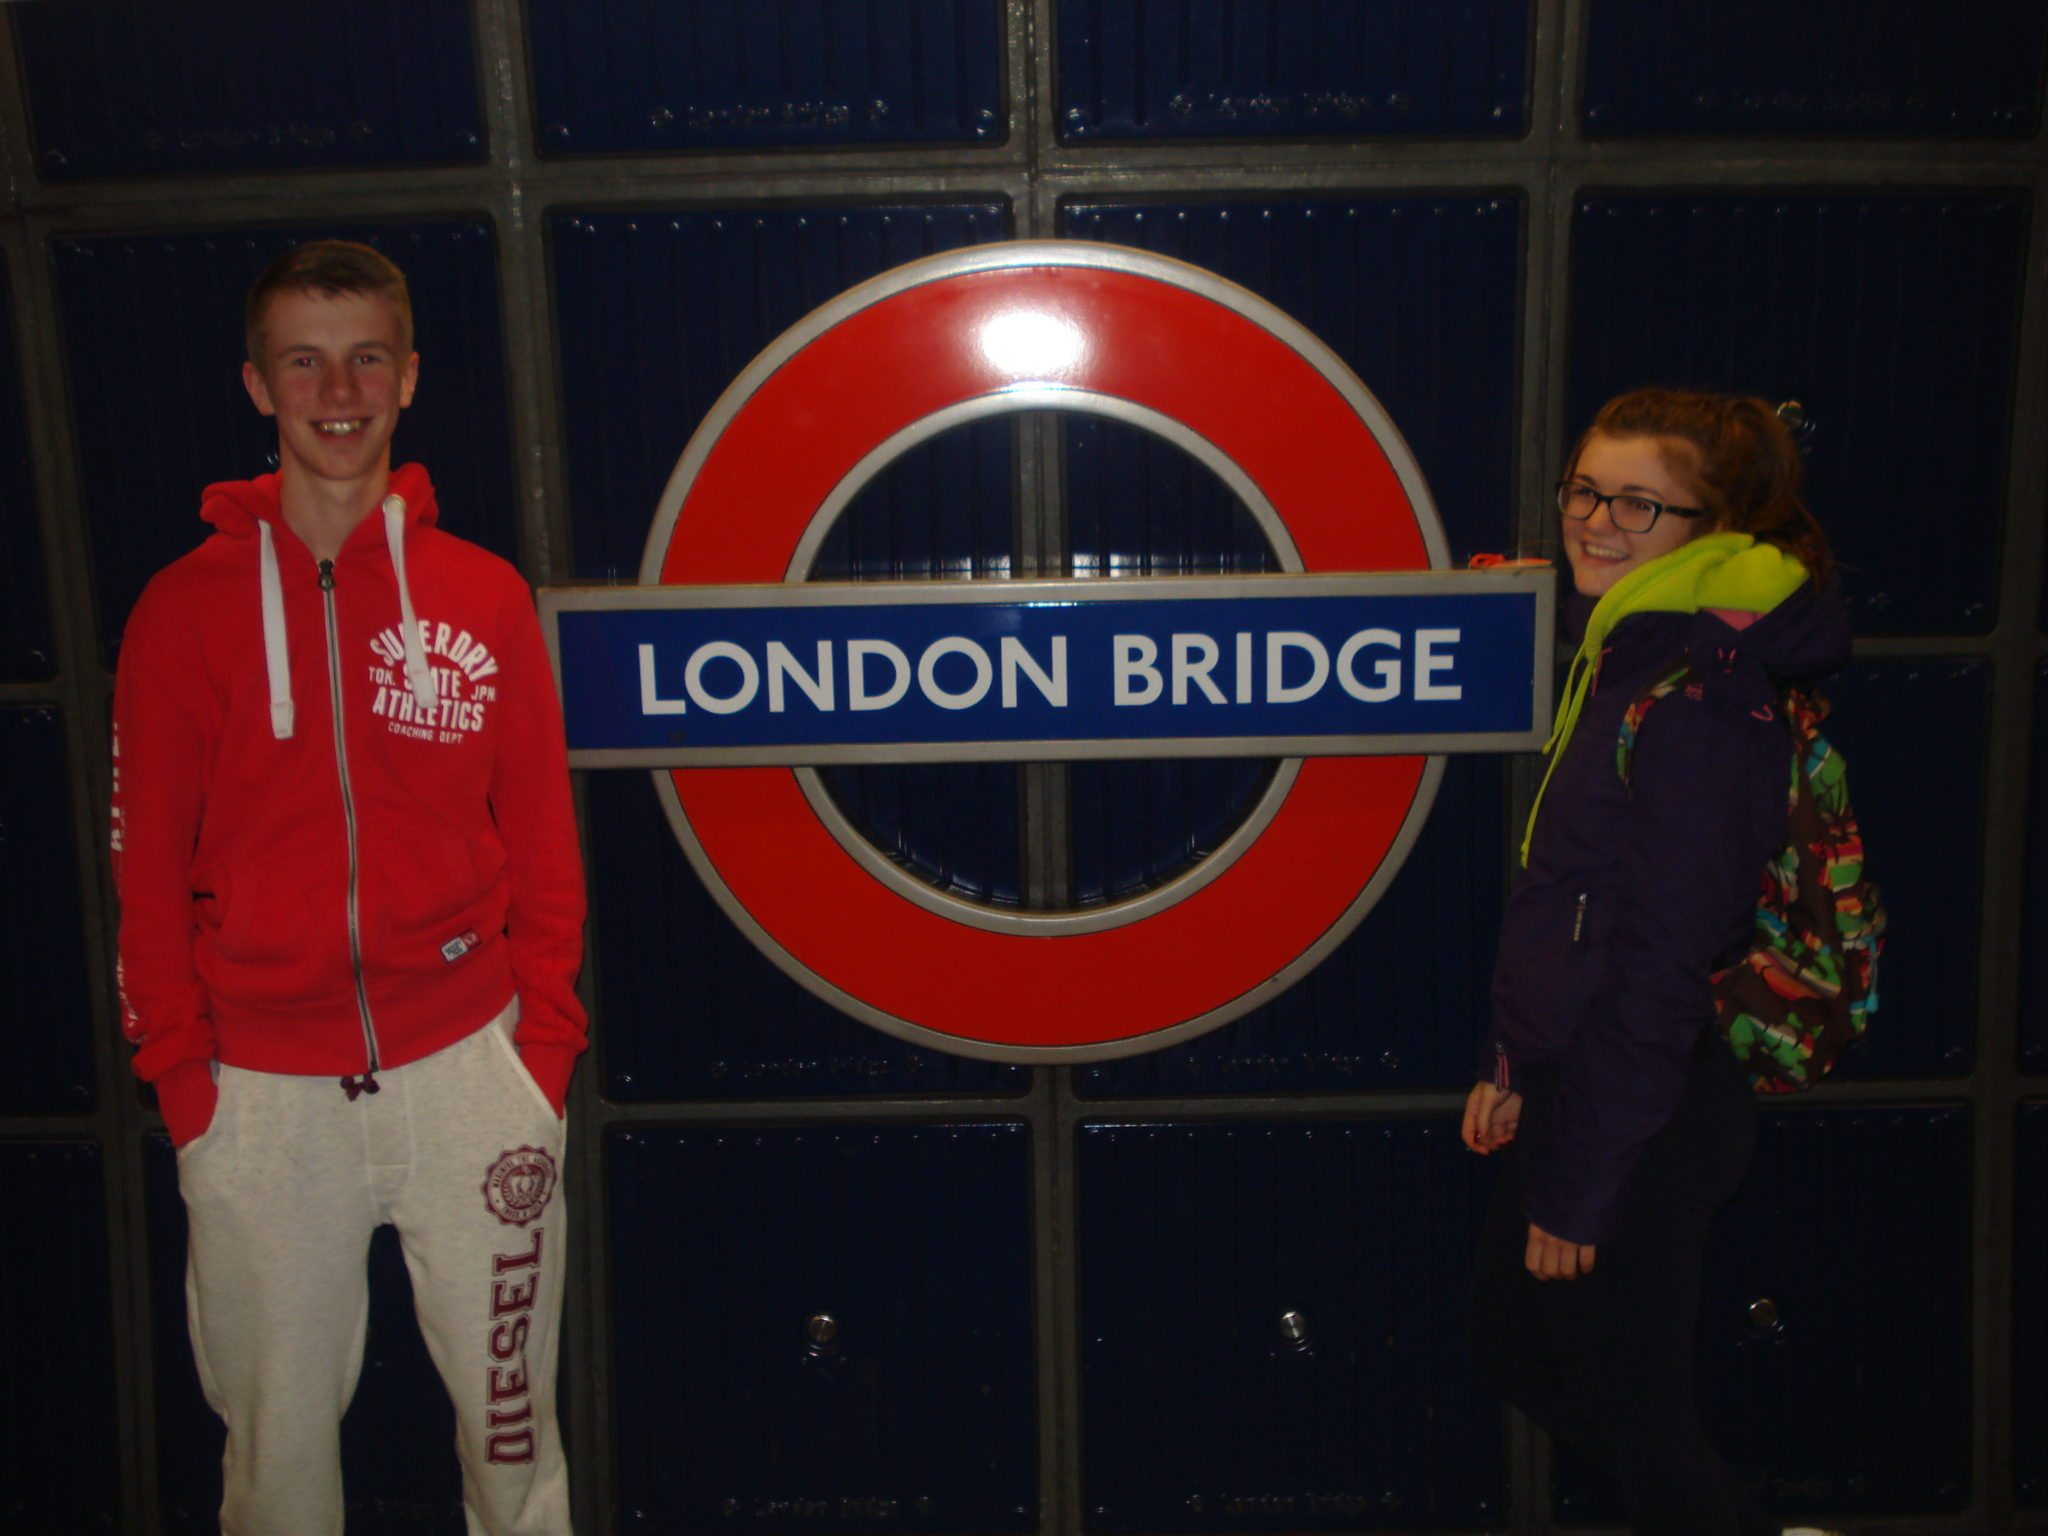 Jack O'Connor and Claire Mortell from desmond College at the iconic london bridge on their TY school tour of london